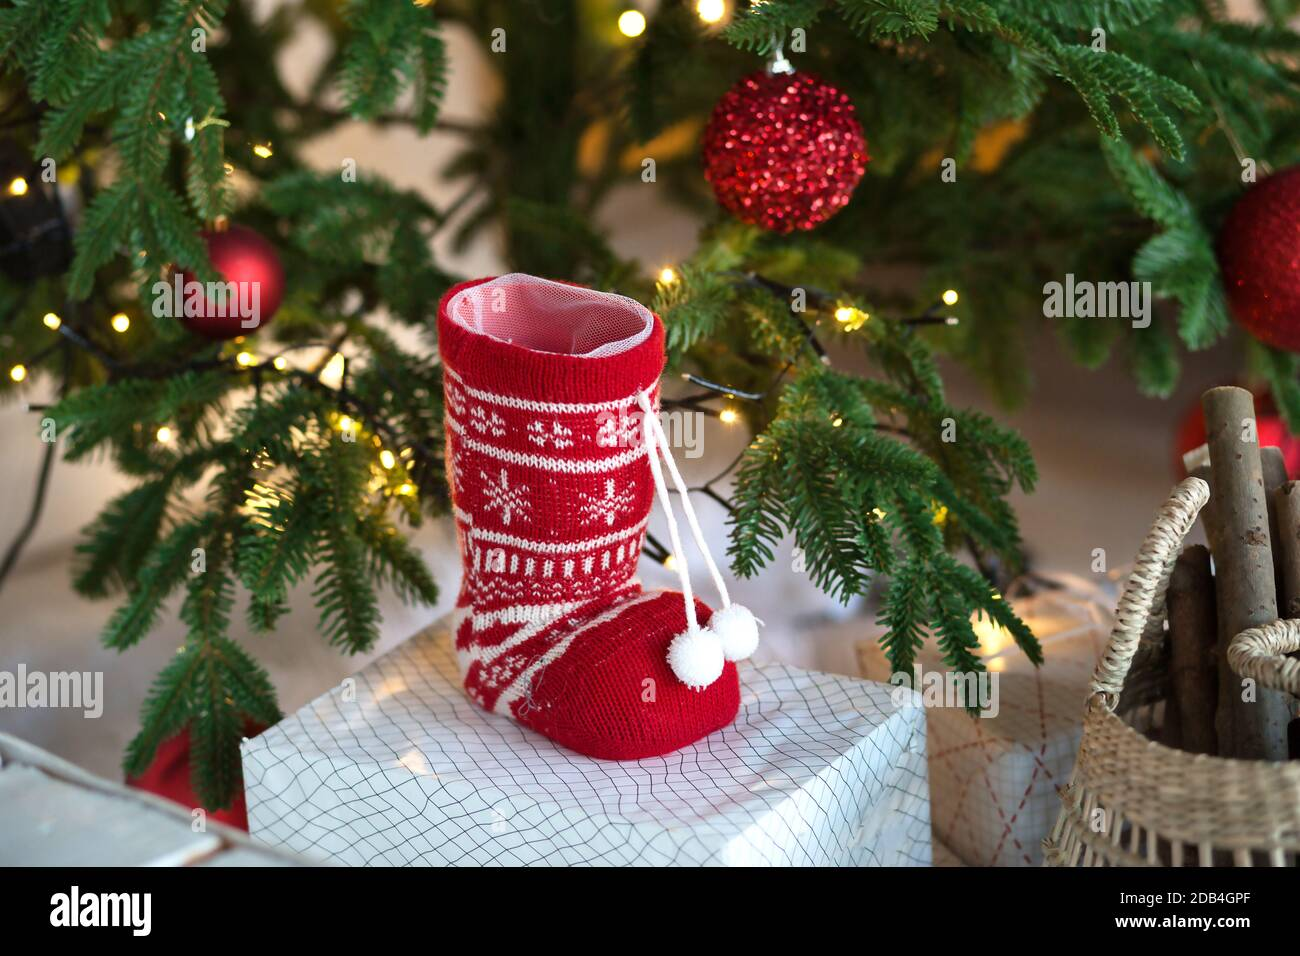 Red Knitted Sock With Ornaments Rustic Christmas Decor Under The Christmas Tree With Lights Of Garlands New Year Home Decor Elements Comfort War Stock Photo Alamy